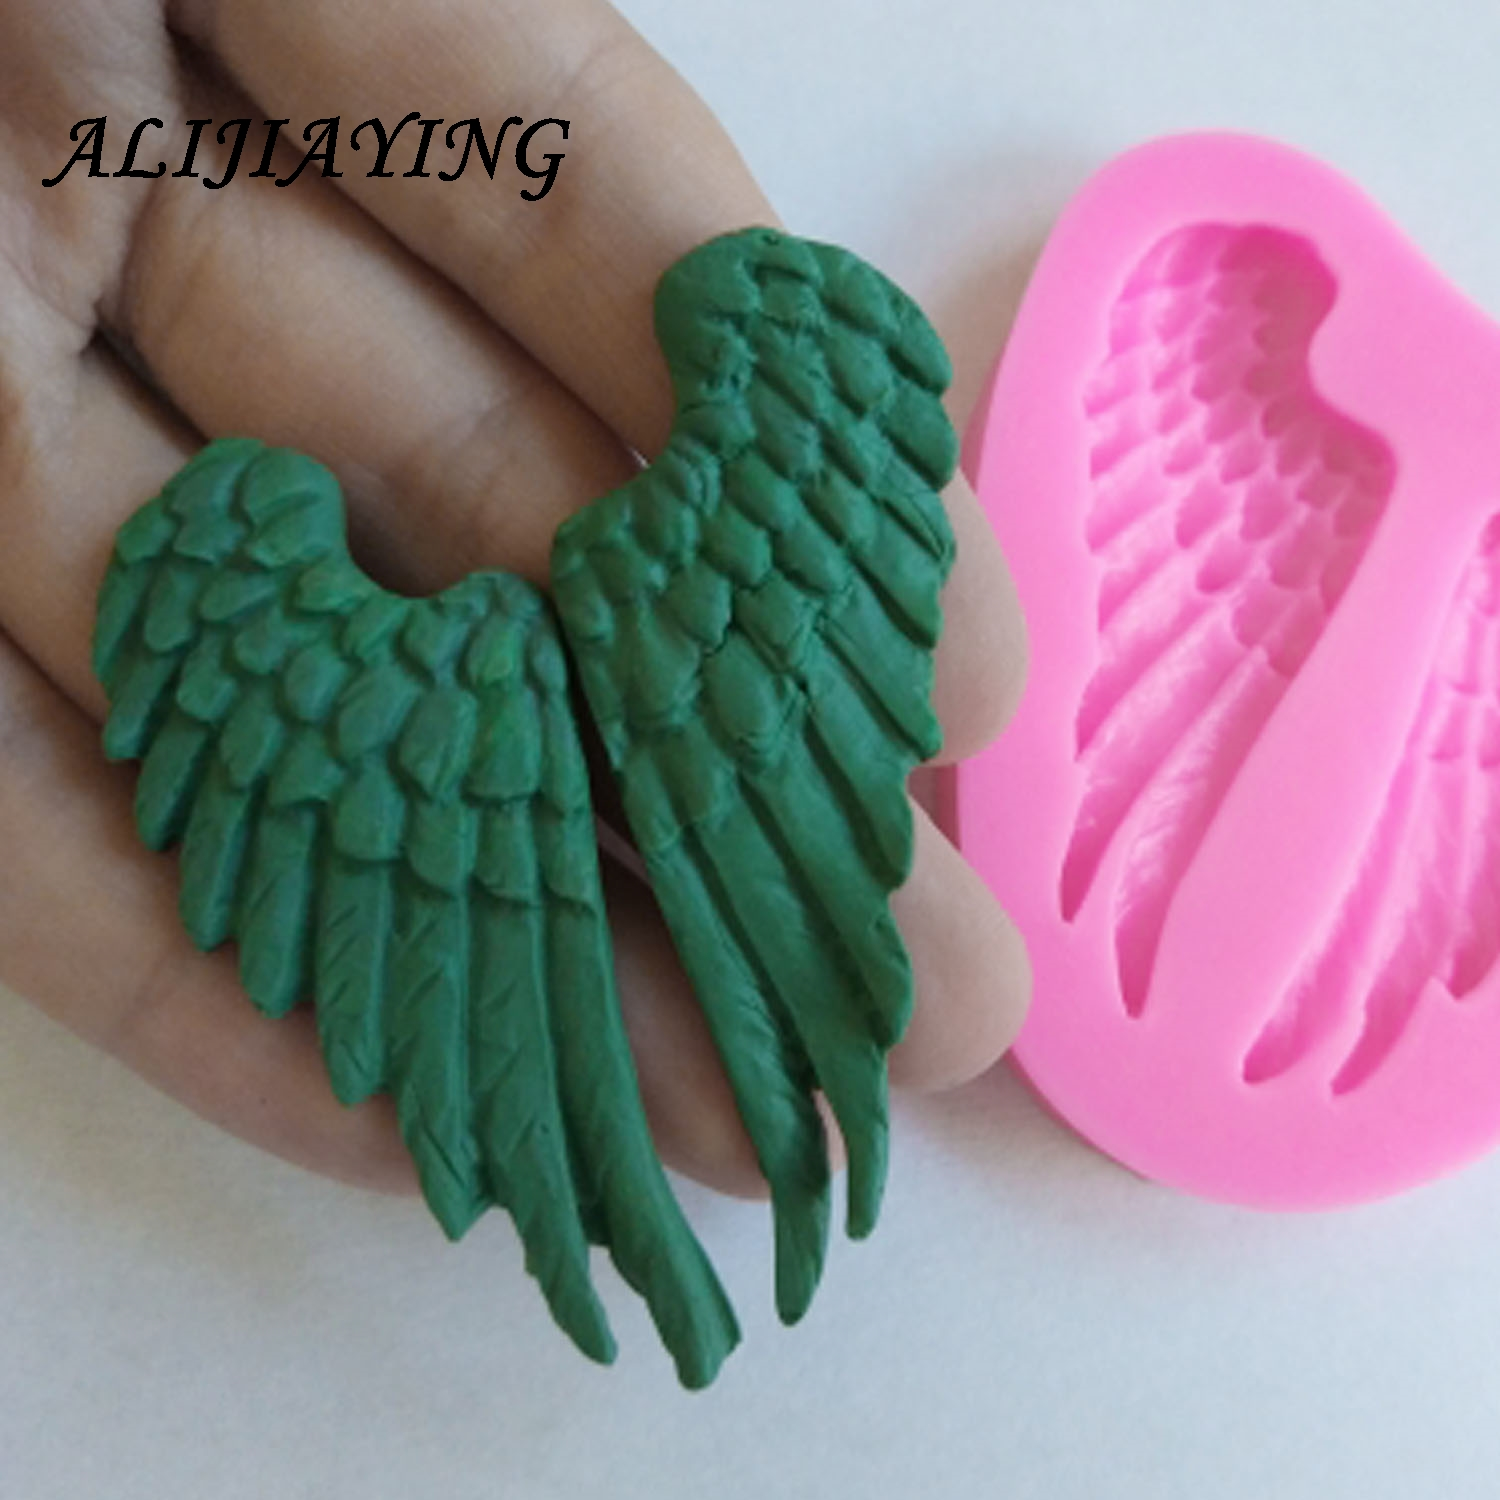 1Pcs Baby <font><b>Angel</b></font> <font><b>Wings</b></font> <font><b>Silicone</b></font> <font><b>Mold</b></font> Fondant Cake Decorating Tools Sugarcraft Chocolate Candy Clay Mould Cupcake <font><b>Mold</b></font> D0227 image